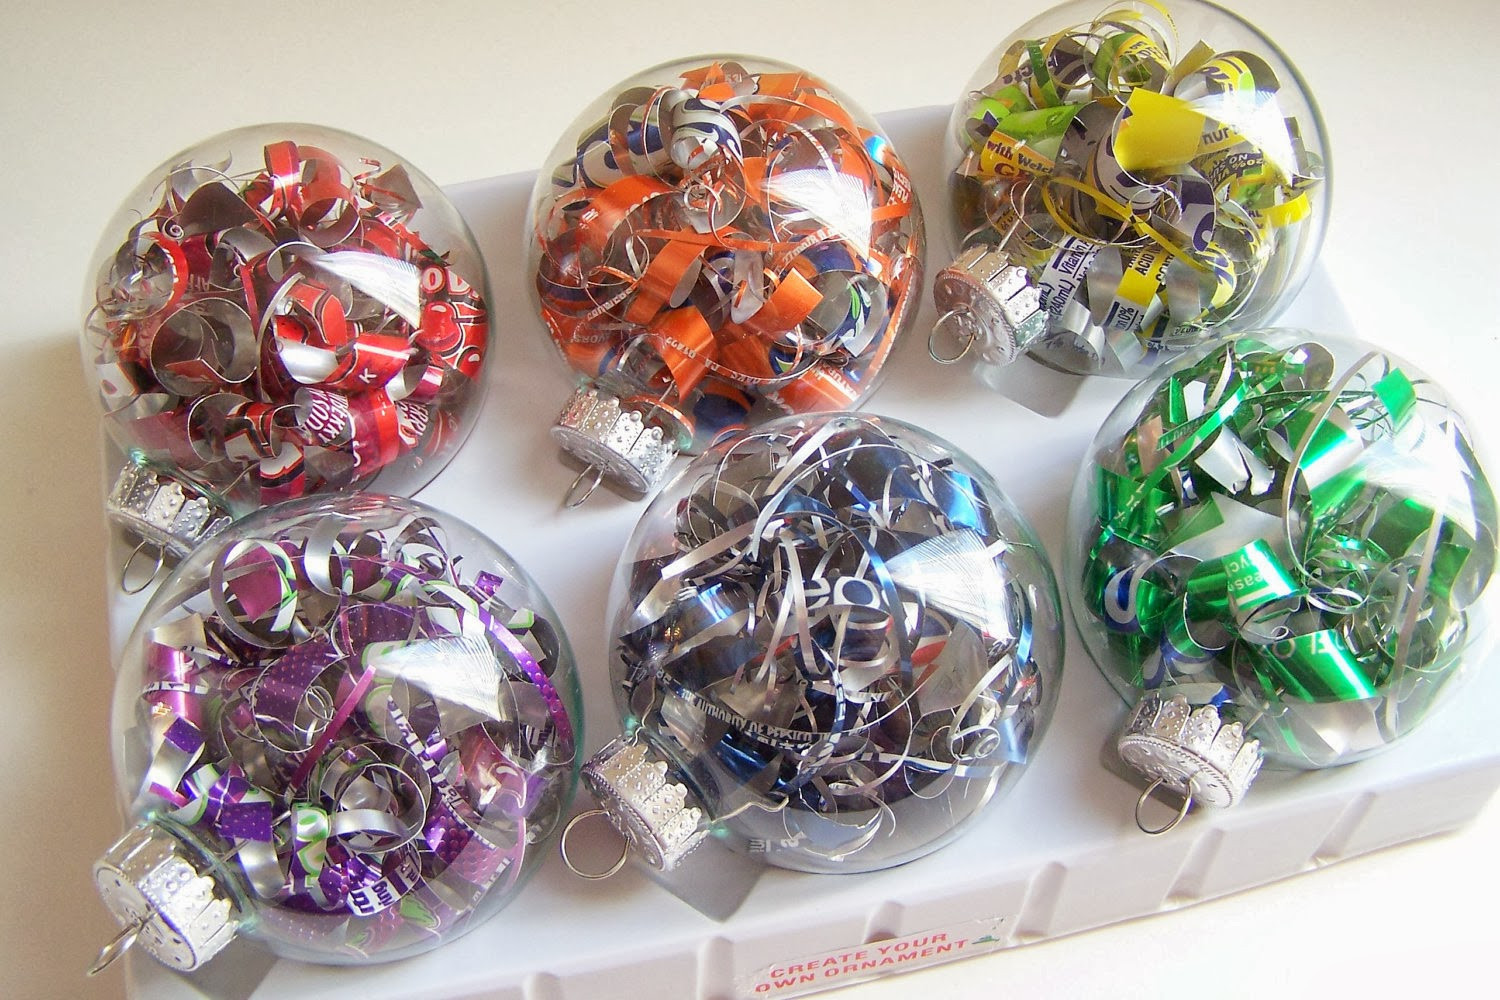 Unique How to Recycle Recycled Christmas Tree ornaments Christmas Tree Balls Of Wonderful 50 Pictures Christmas Tree Balls